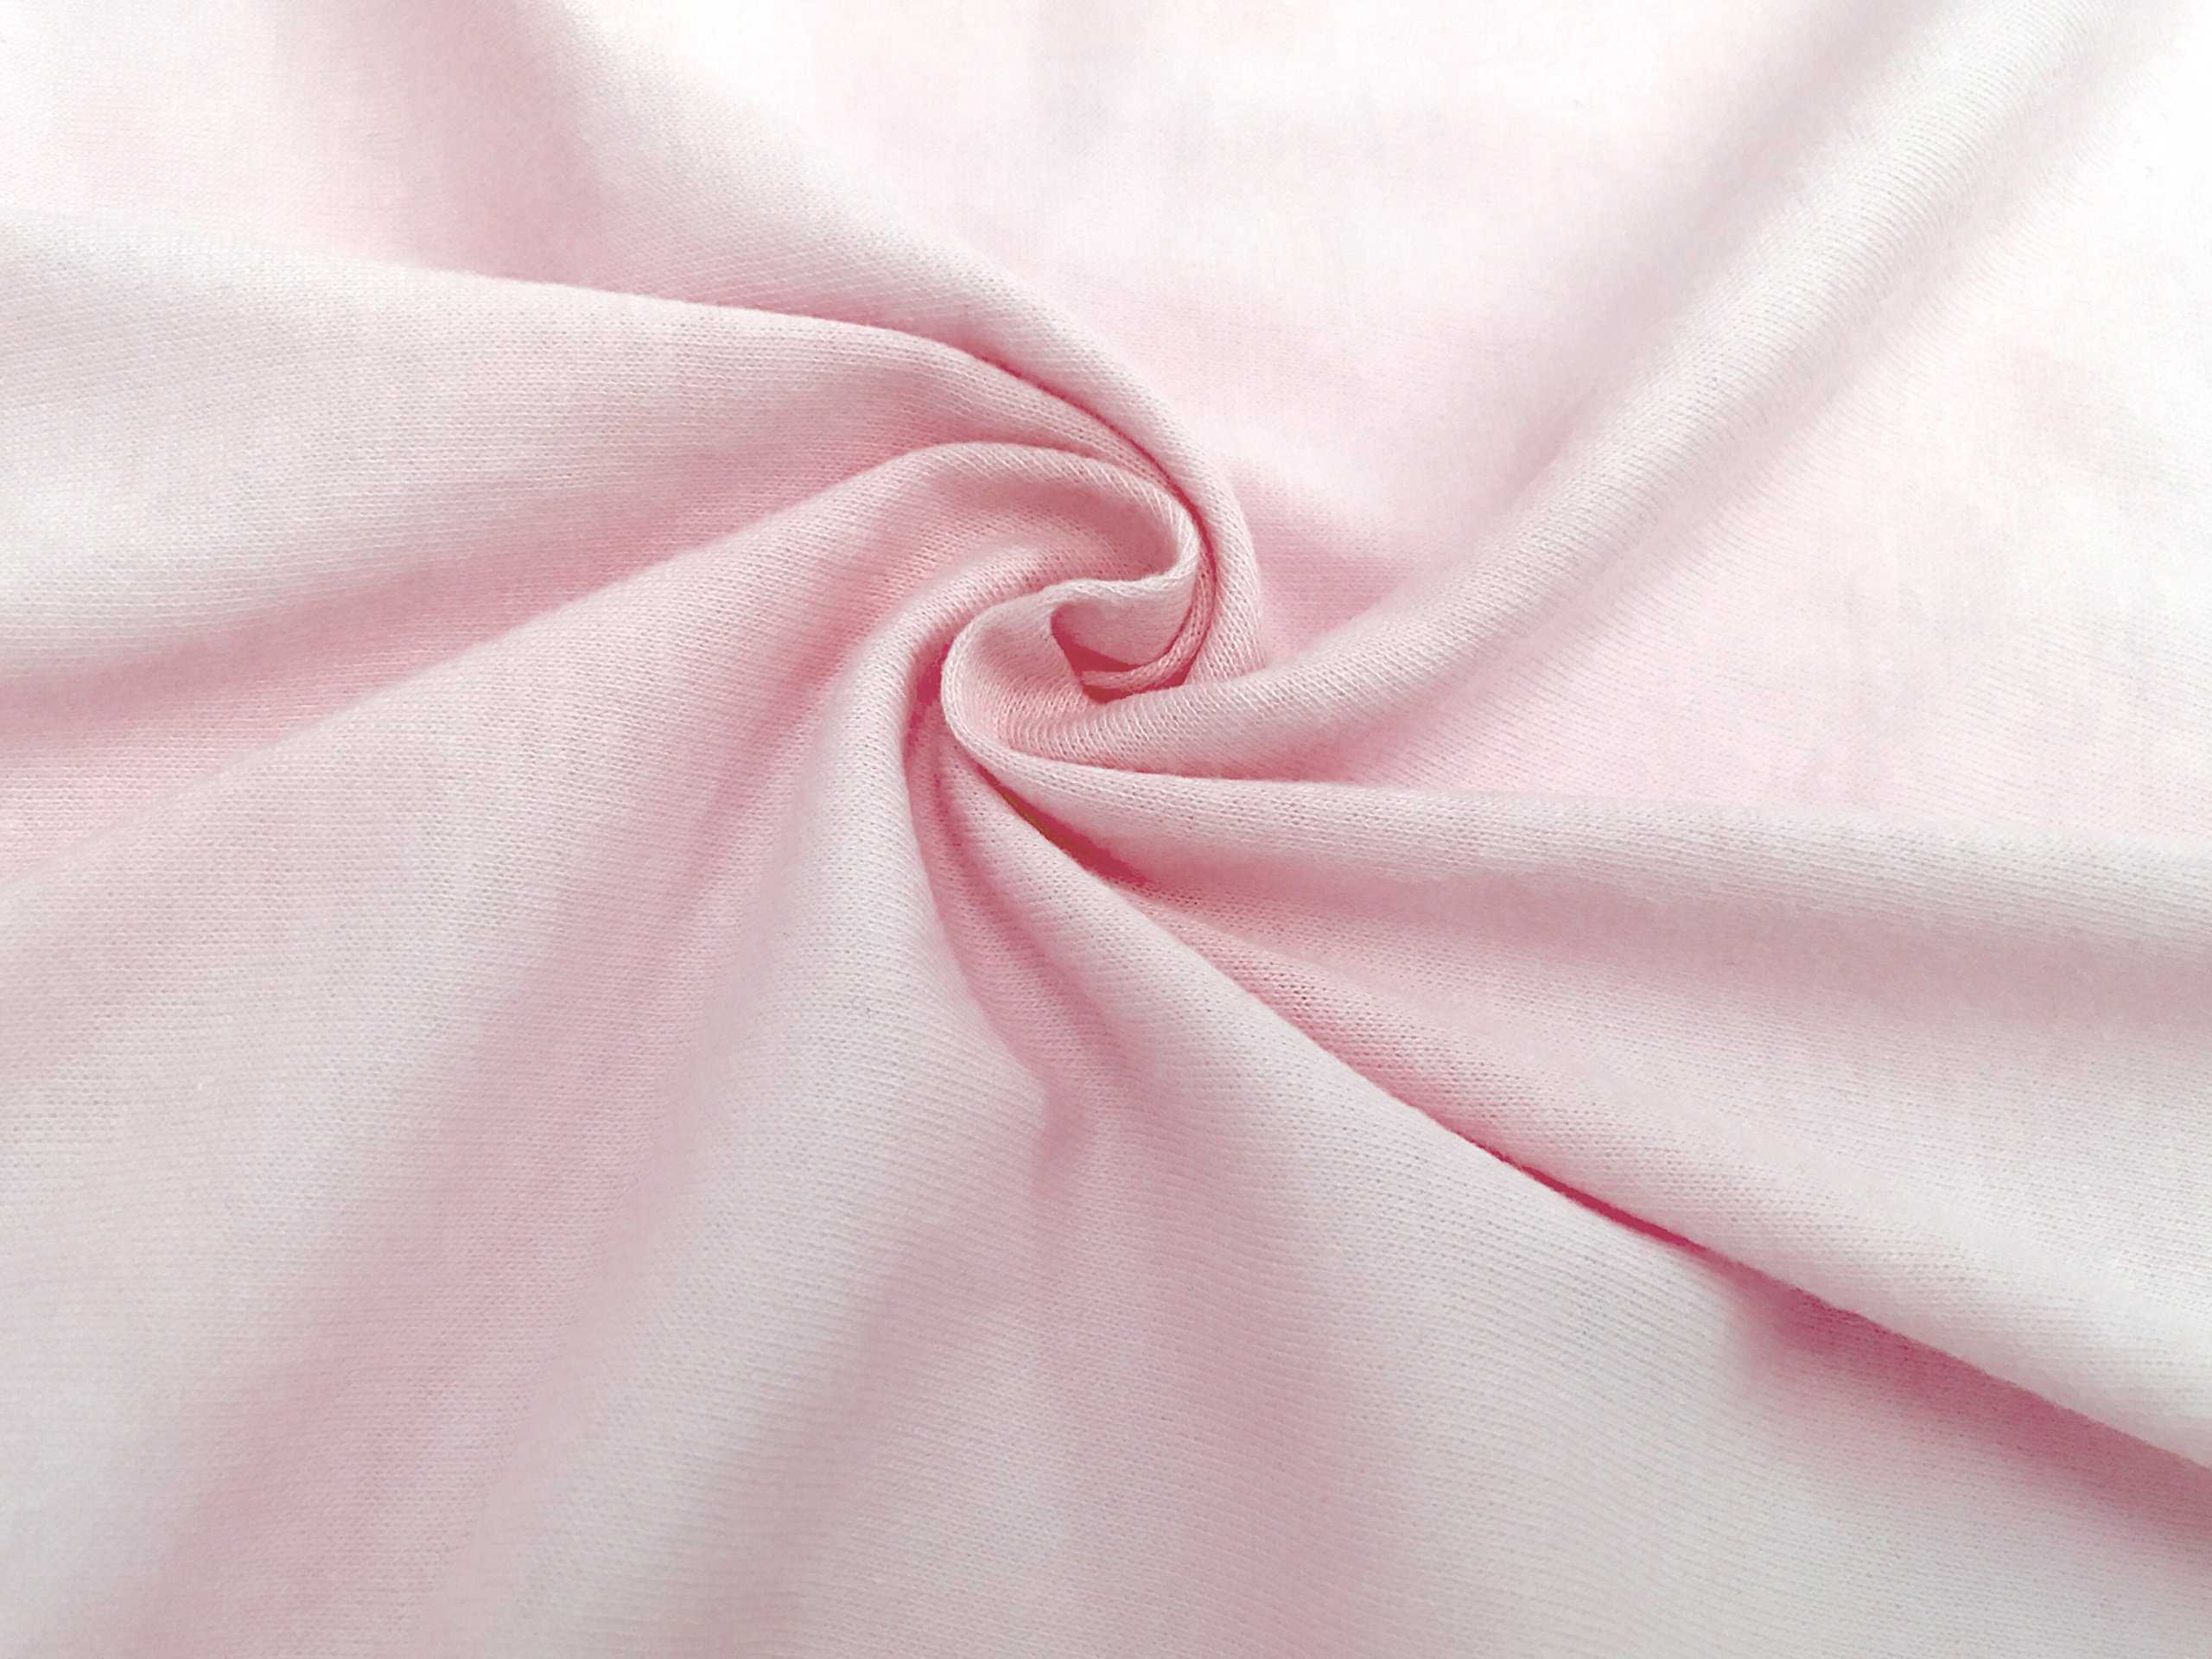 American Baby Company 100% Natural Cotton Value Jersey Knit Fitted Portable/Mini-Crib Sheet, Pink, Soft Breathable, for Girls, Pack of 1